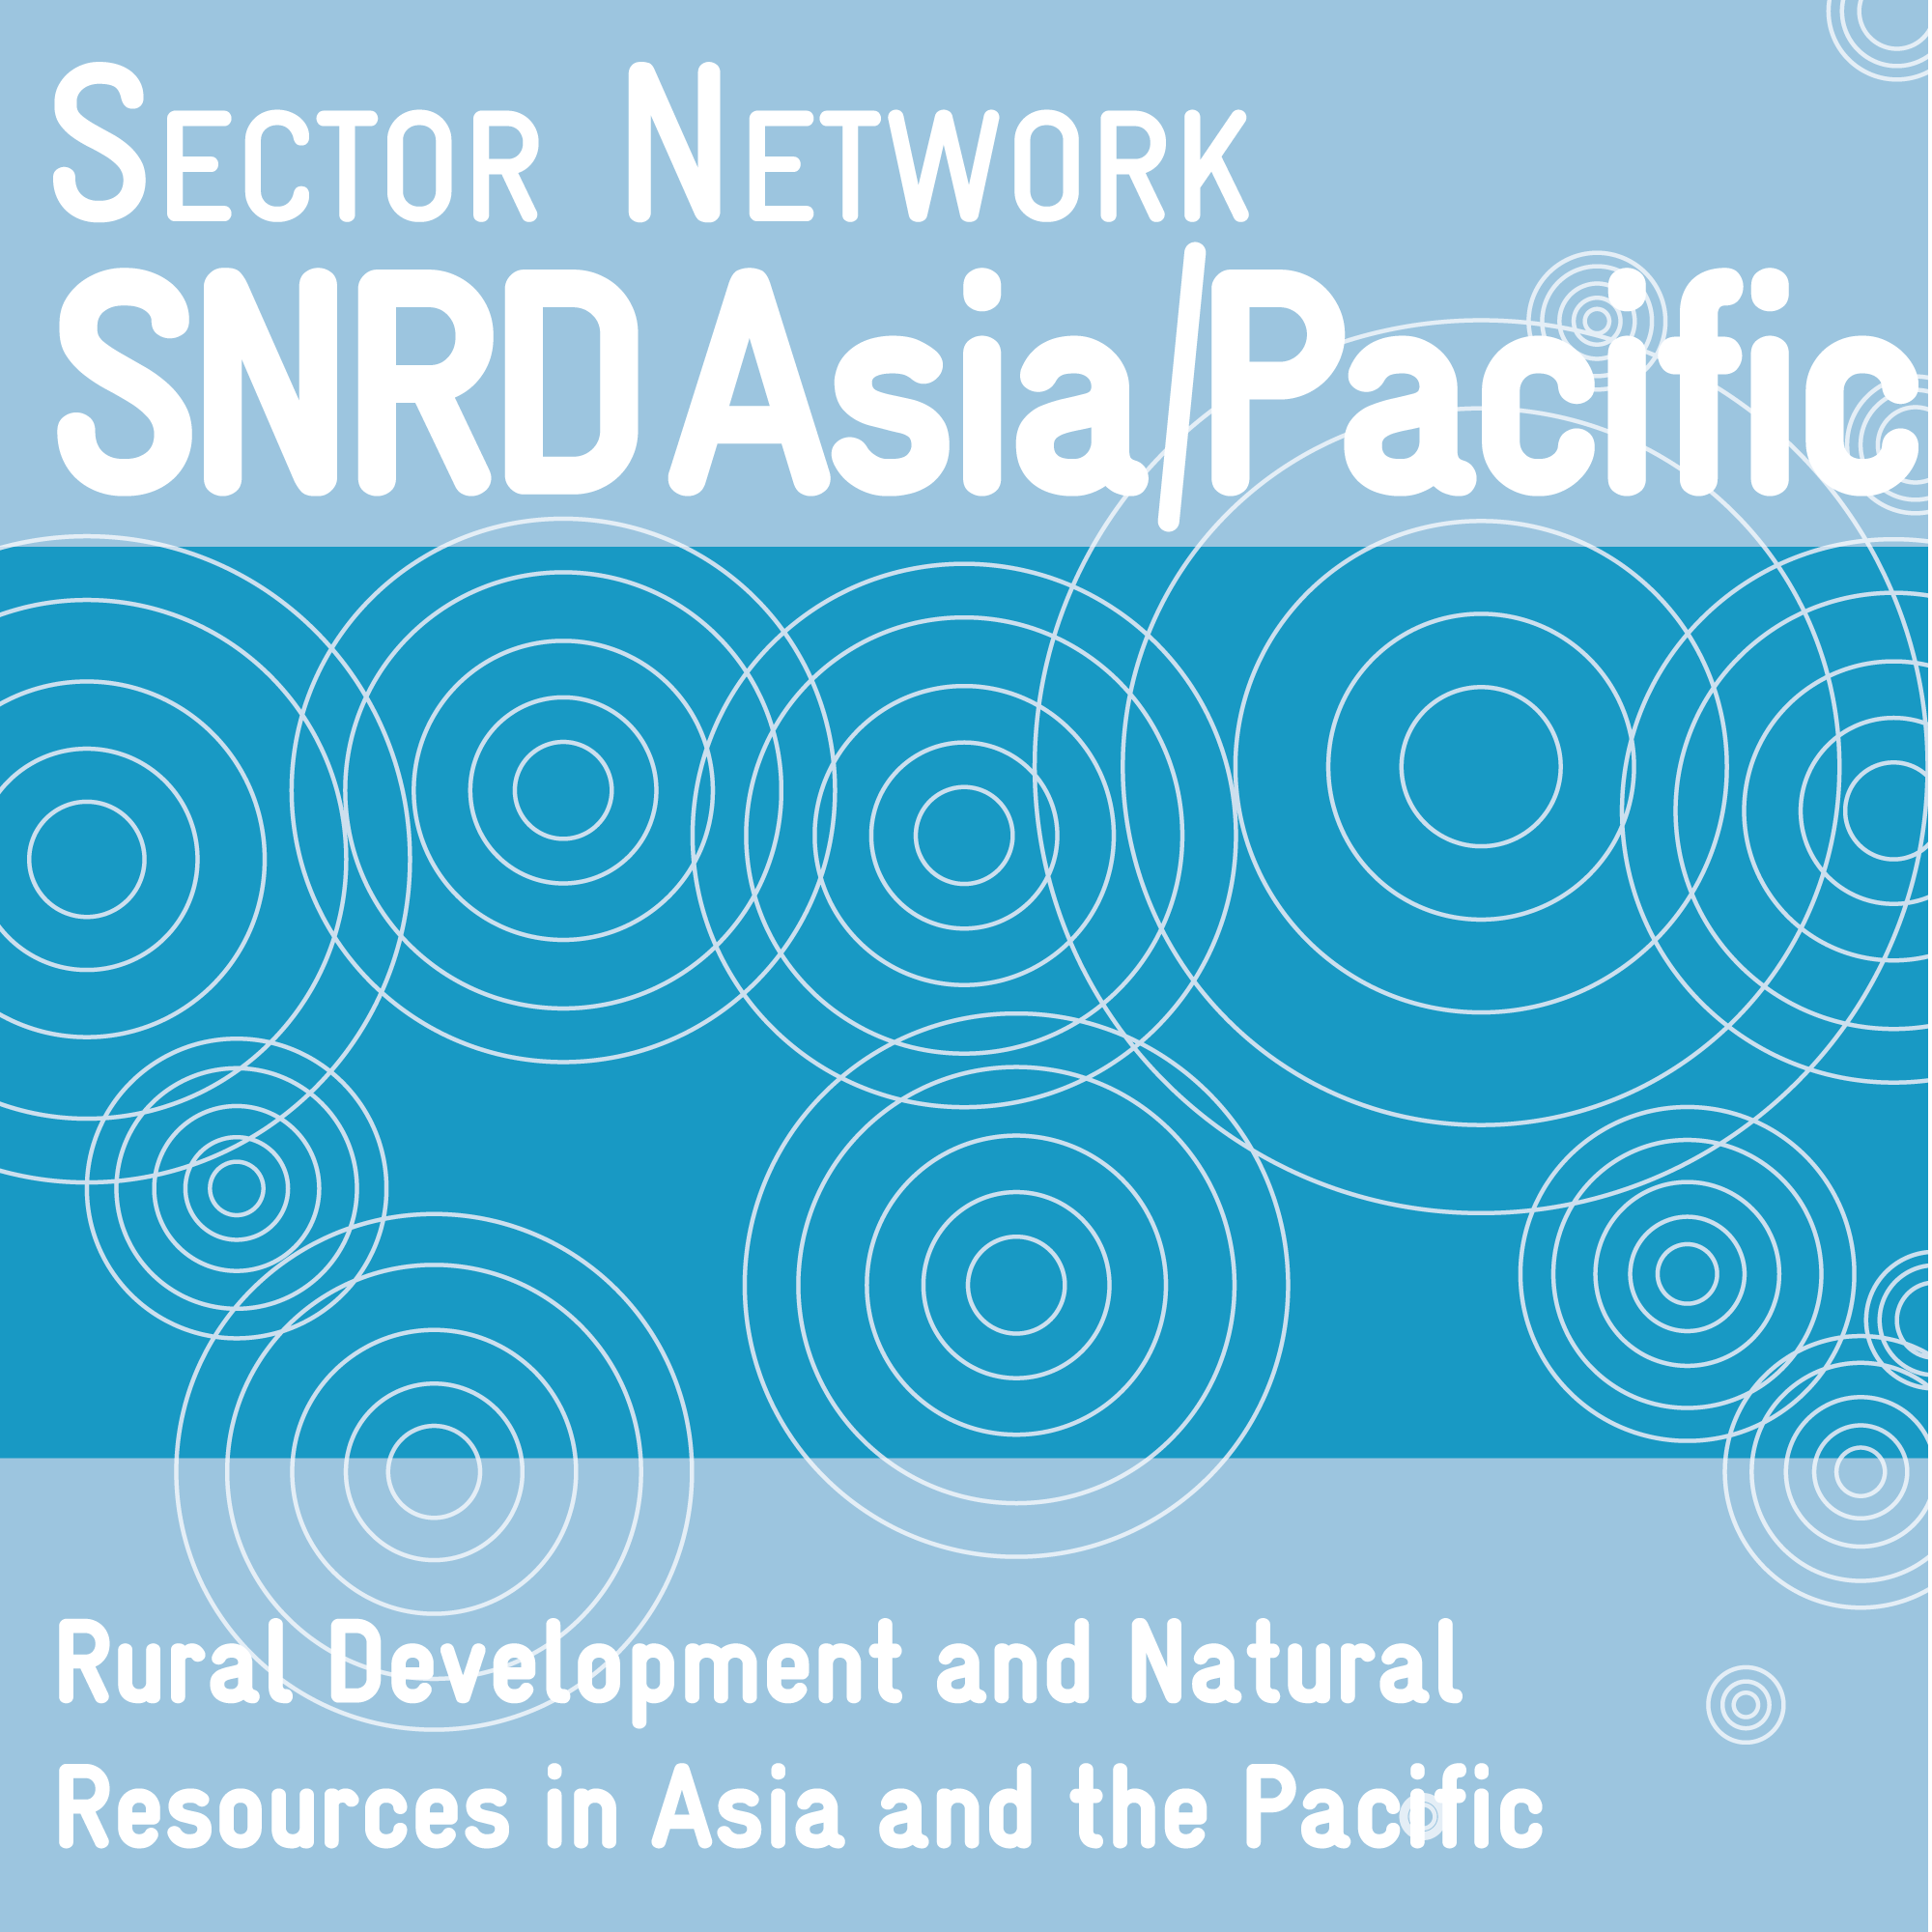 Sector Network Natural Resources and Rural Development Asia